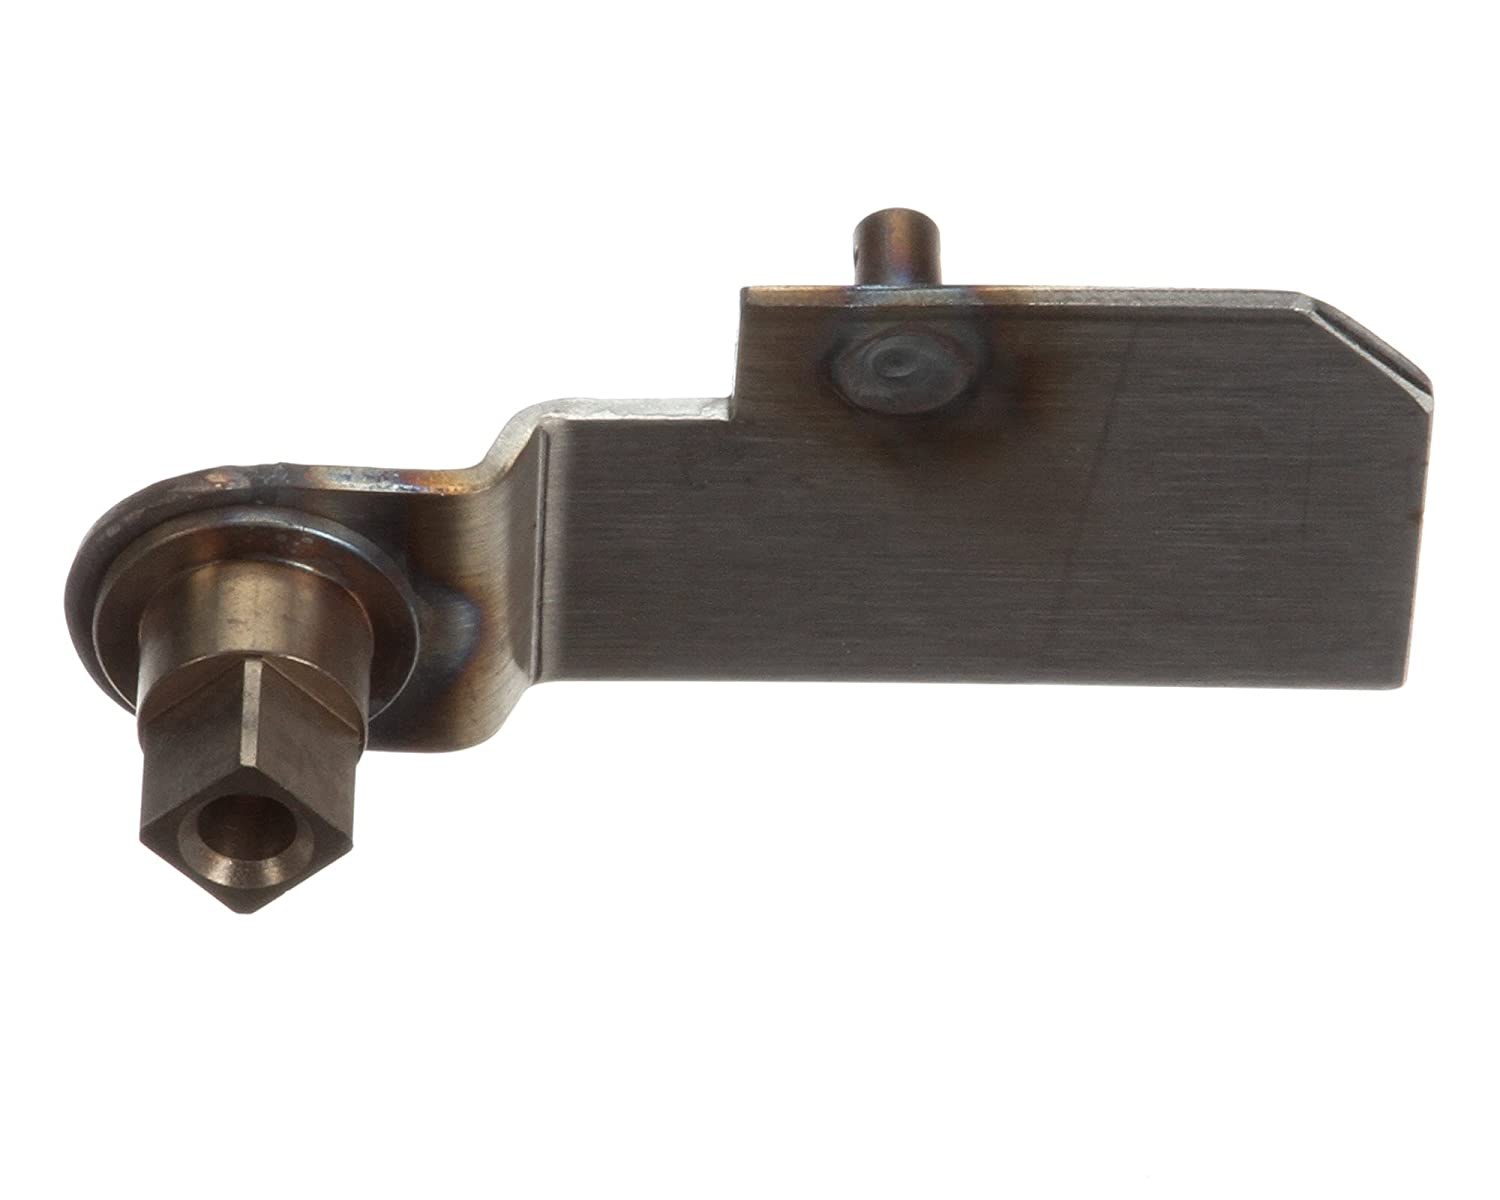 "Champion - Moyer Diebel 0710098 Model Uh-150 Right Hand Hinge Welded Assembly, 9"" Height, 6"" Width, 5"" Length 71cWn80oB9L._SL1500_"